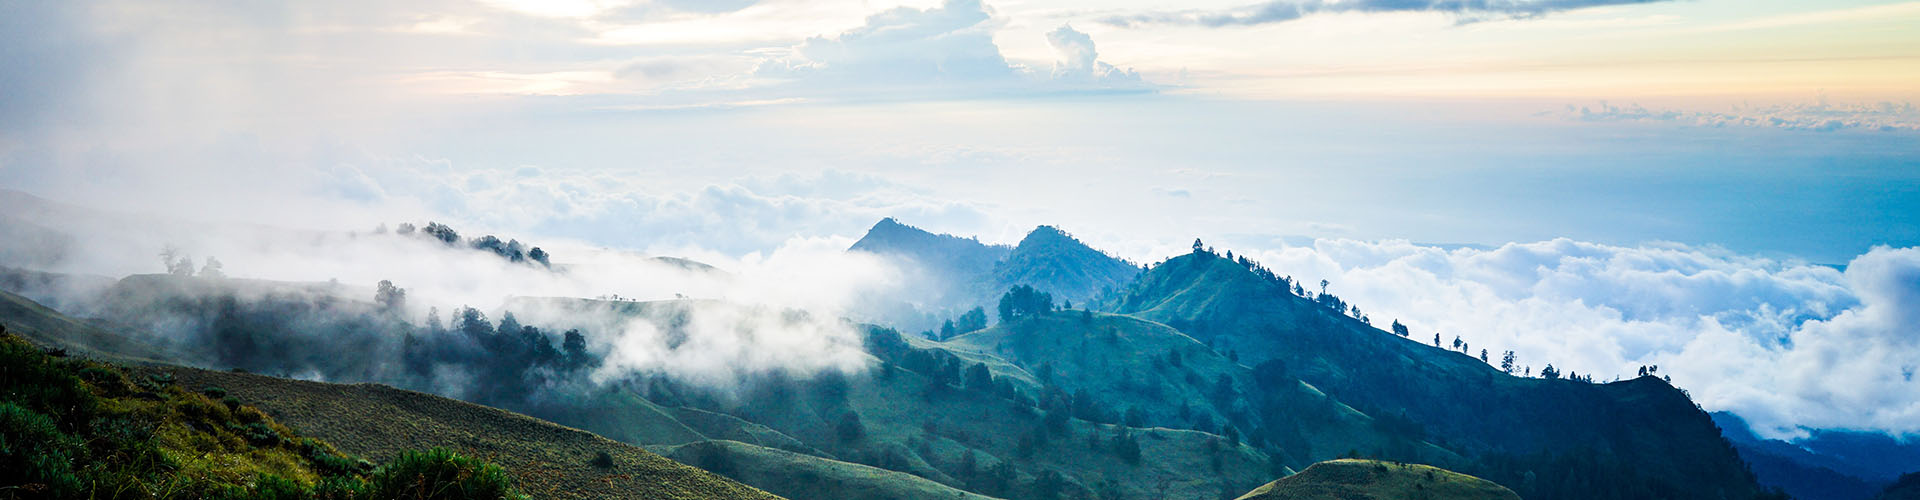 indonesia-mountains-sea.jpg